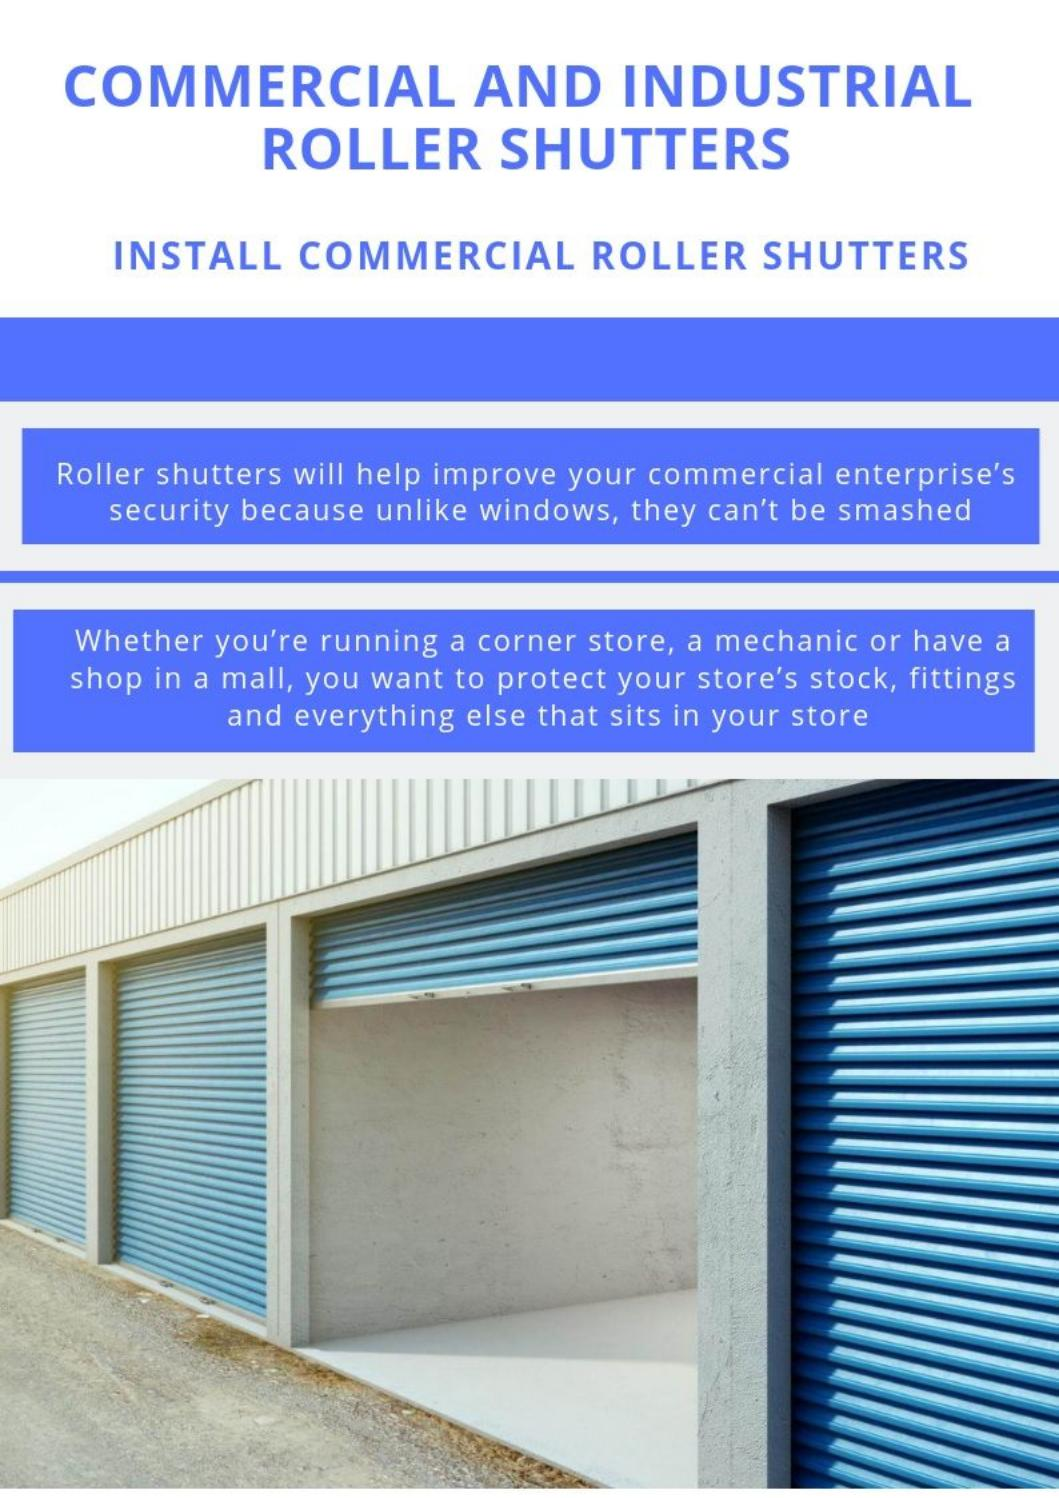 Commercial And Industrial Roller Shutters By Diedrich Carter